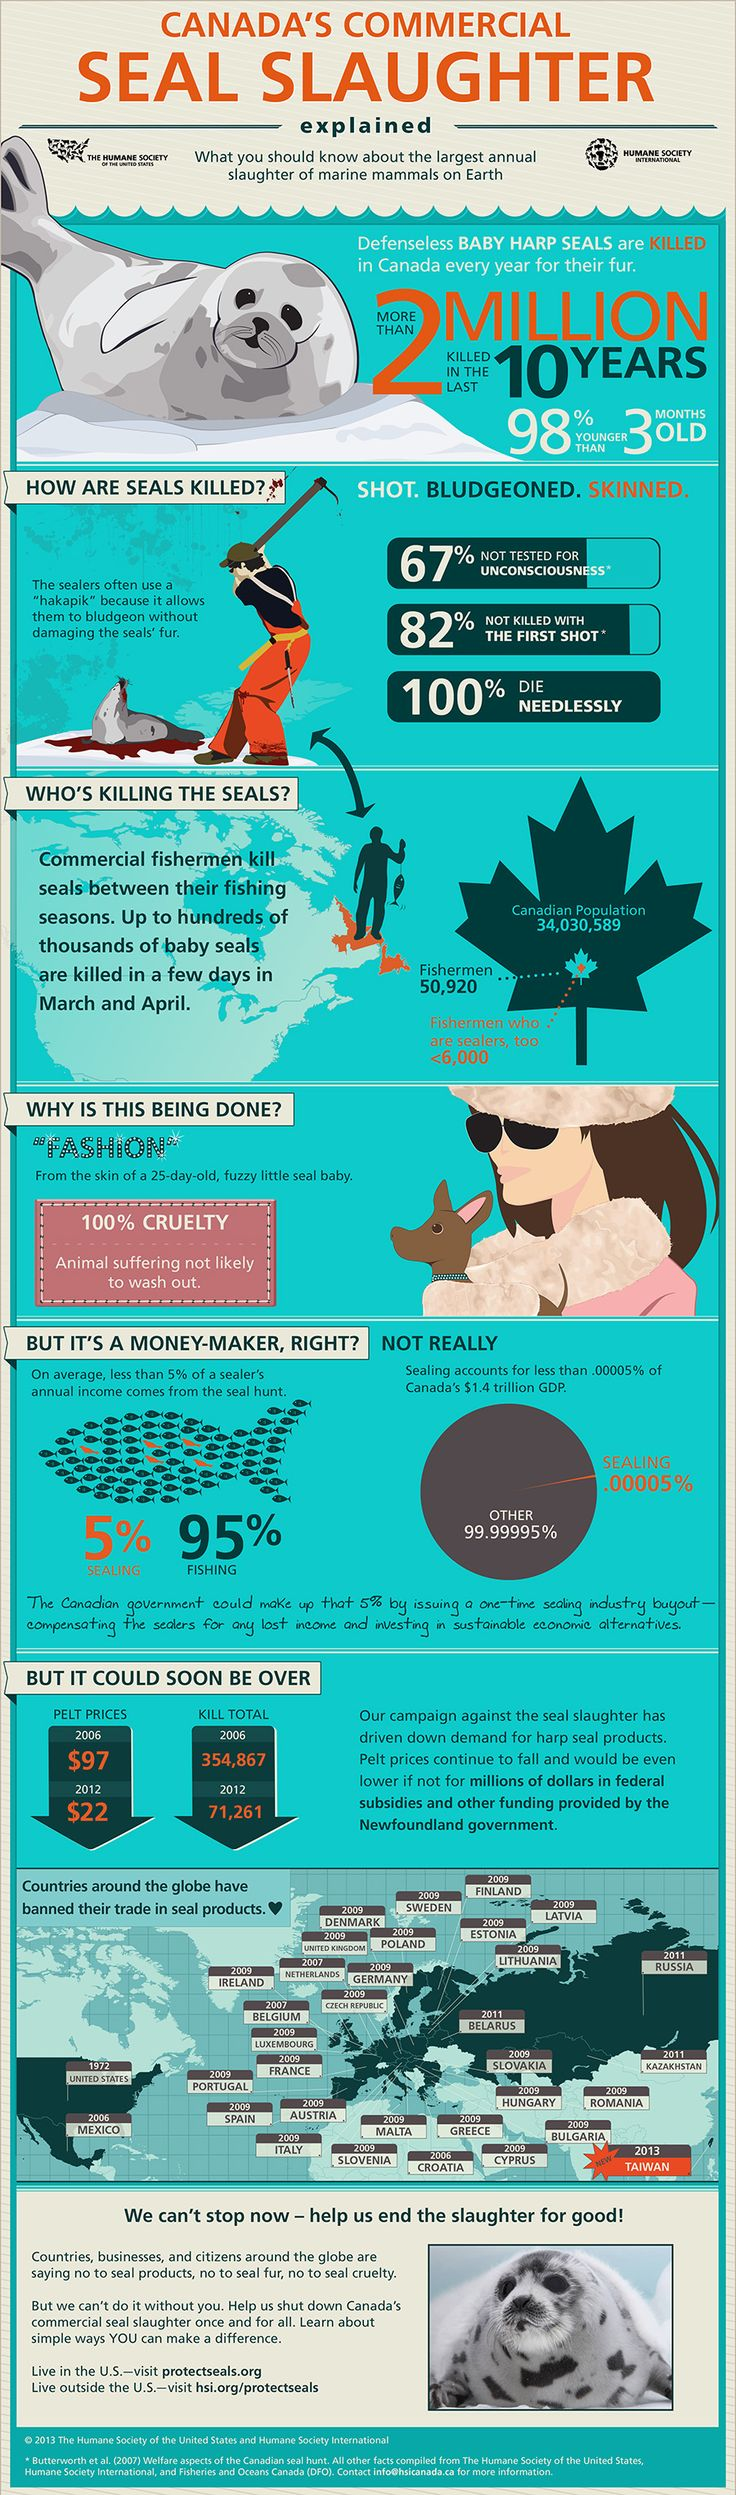 Canadas Commercial Seal Slaughter Explained [Infographic] : The United States is the leading consumer of Canadian seafood exports, so we must use our purchasing power if we want to help seals! Boycott seafood from Canada! The Humane Society of the United States